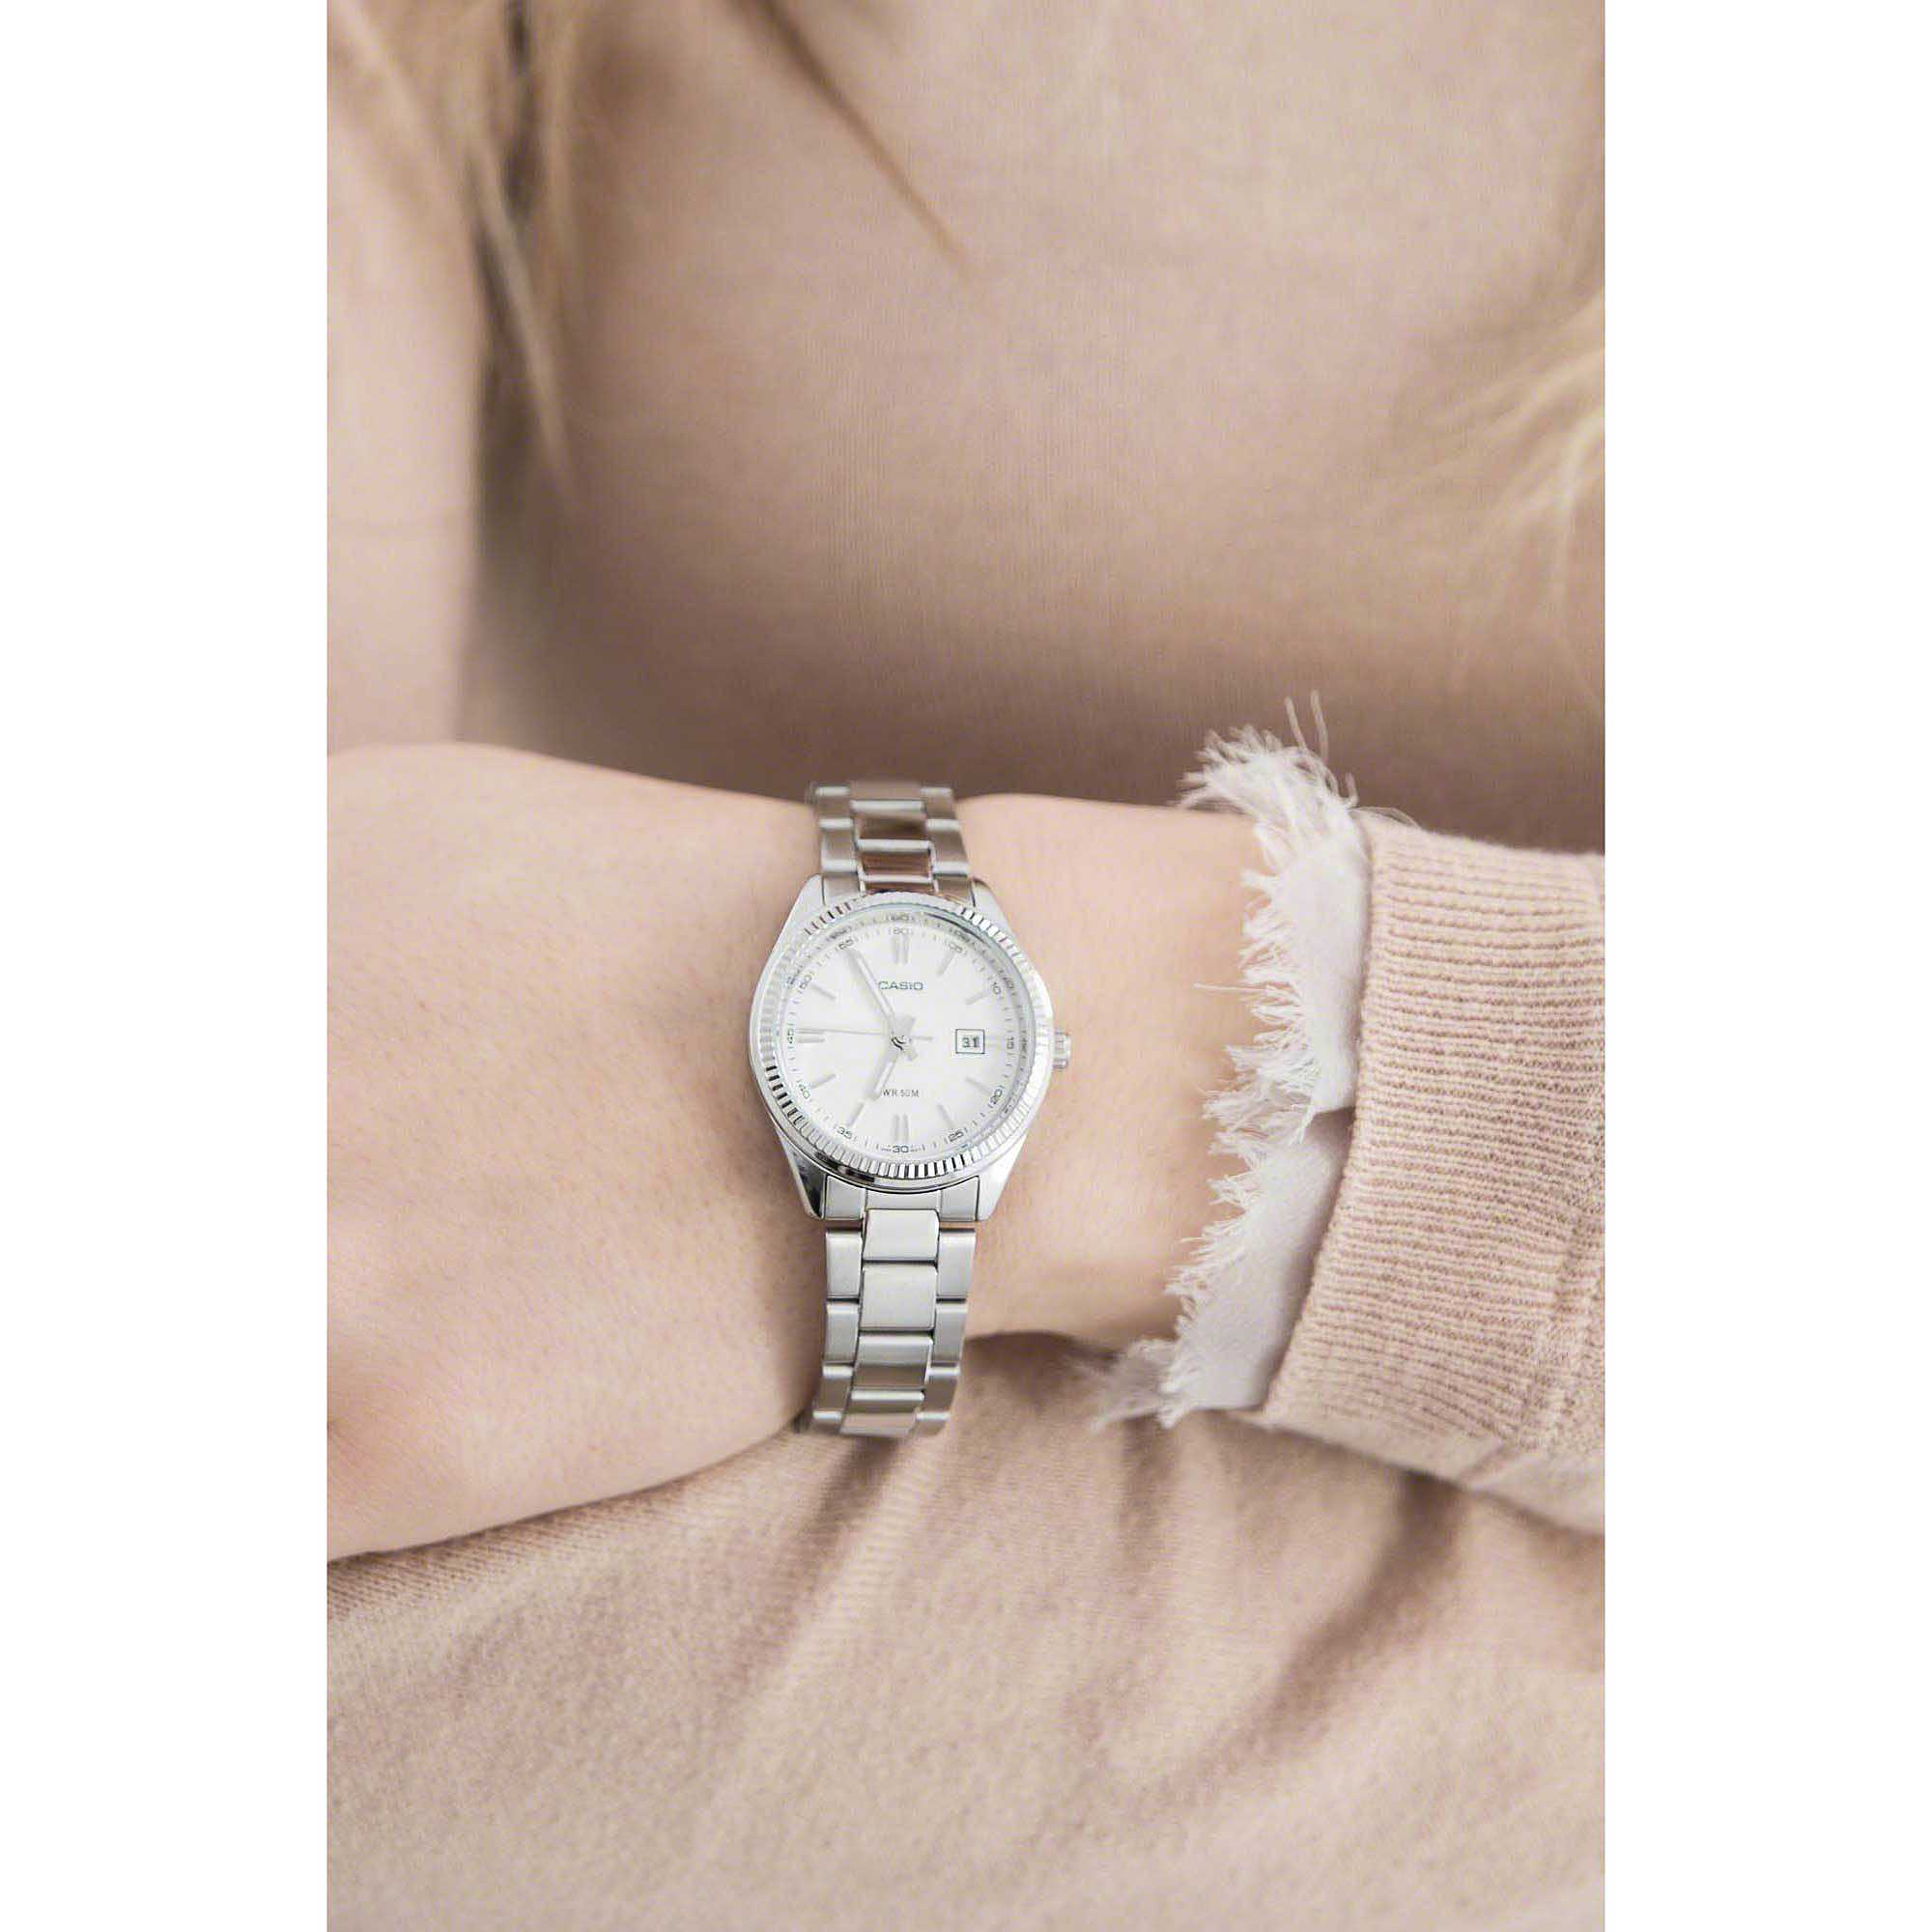 c6bb914155709 watch only time woman Casio Casio Collection LTP-1302PD-7A1VEF only ...